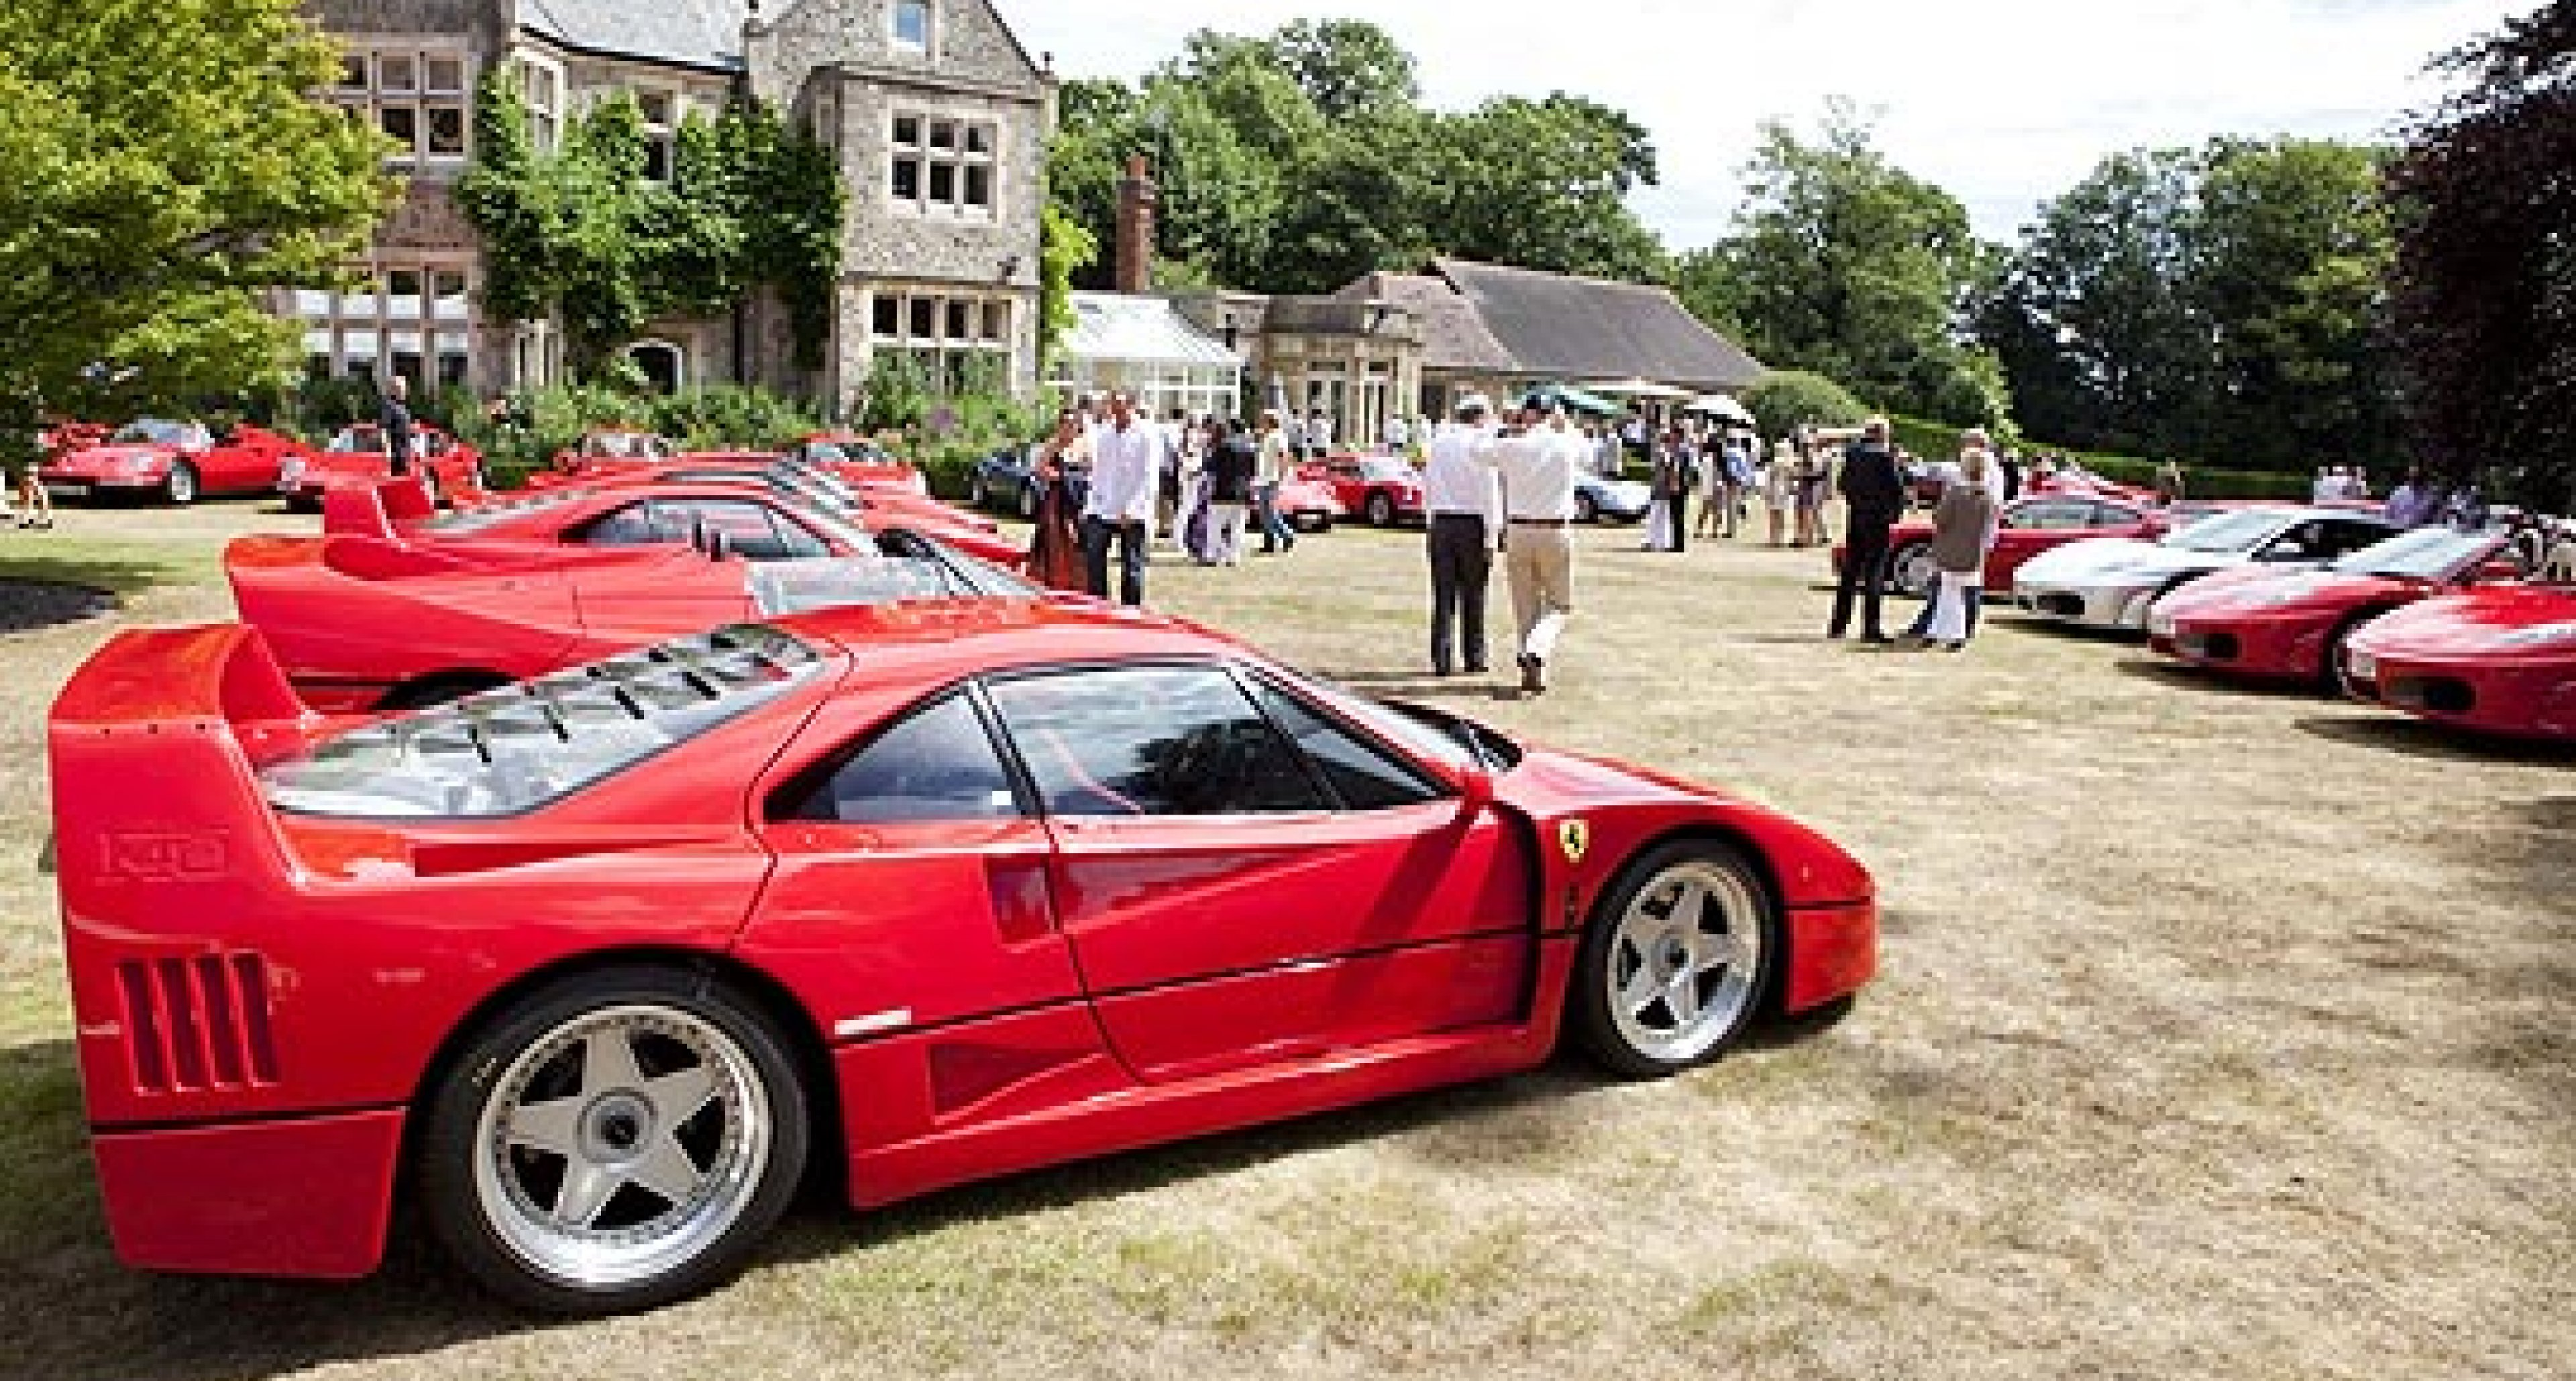 Foskers Concours and Garden Party at Ightham Warren